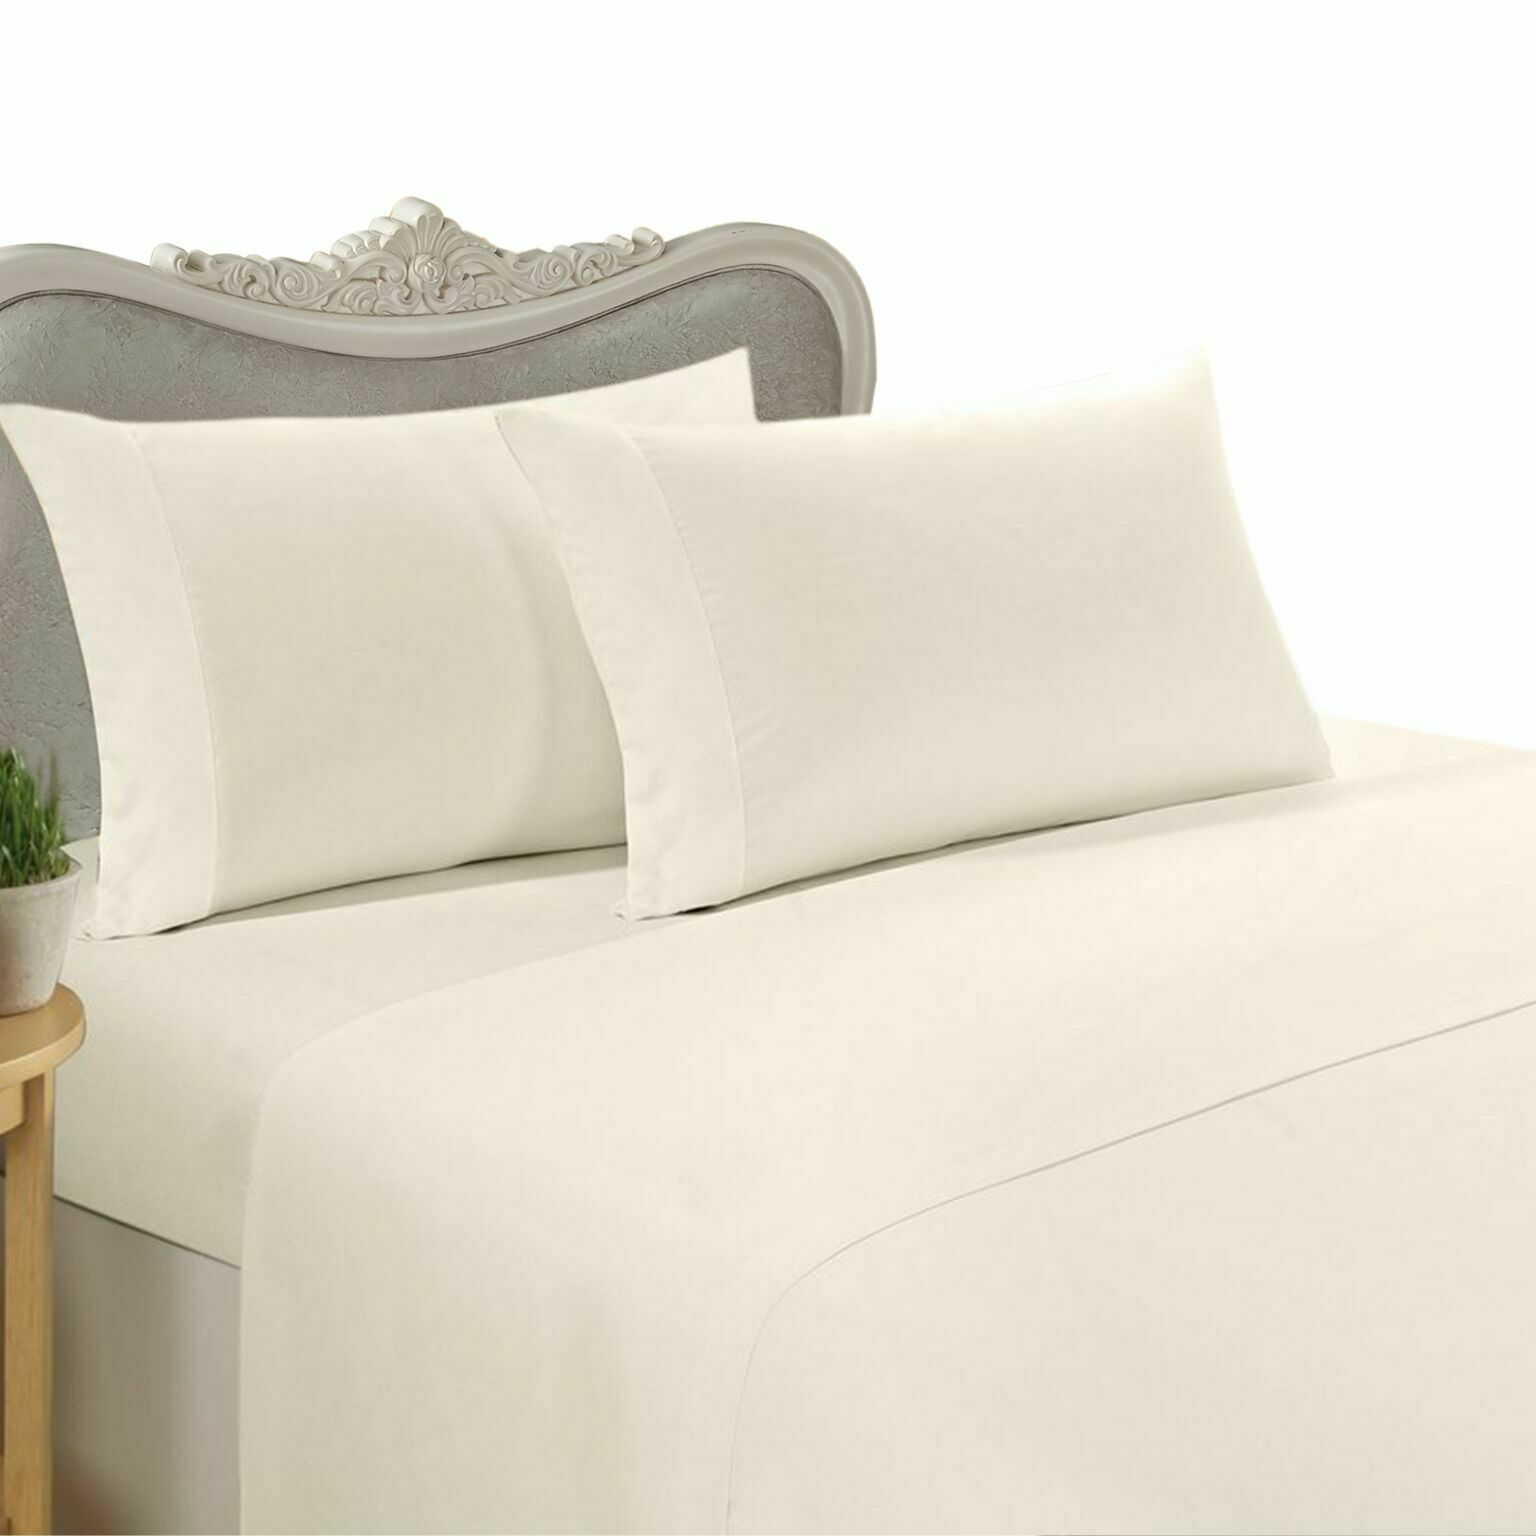 1000 Thread Count 100% Egyptian Cotton Bed Sheet Set, 1000TC, QUEEN, Ivory Solid